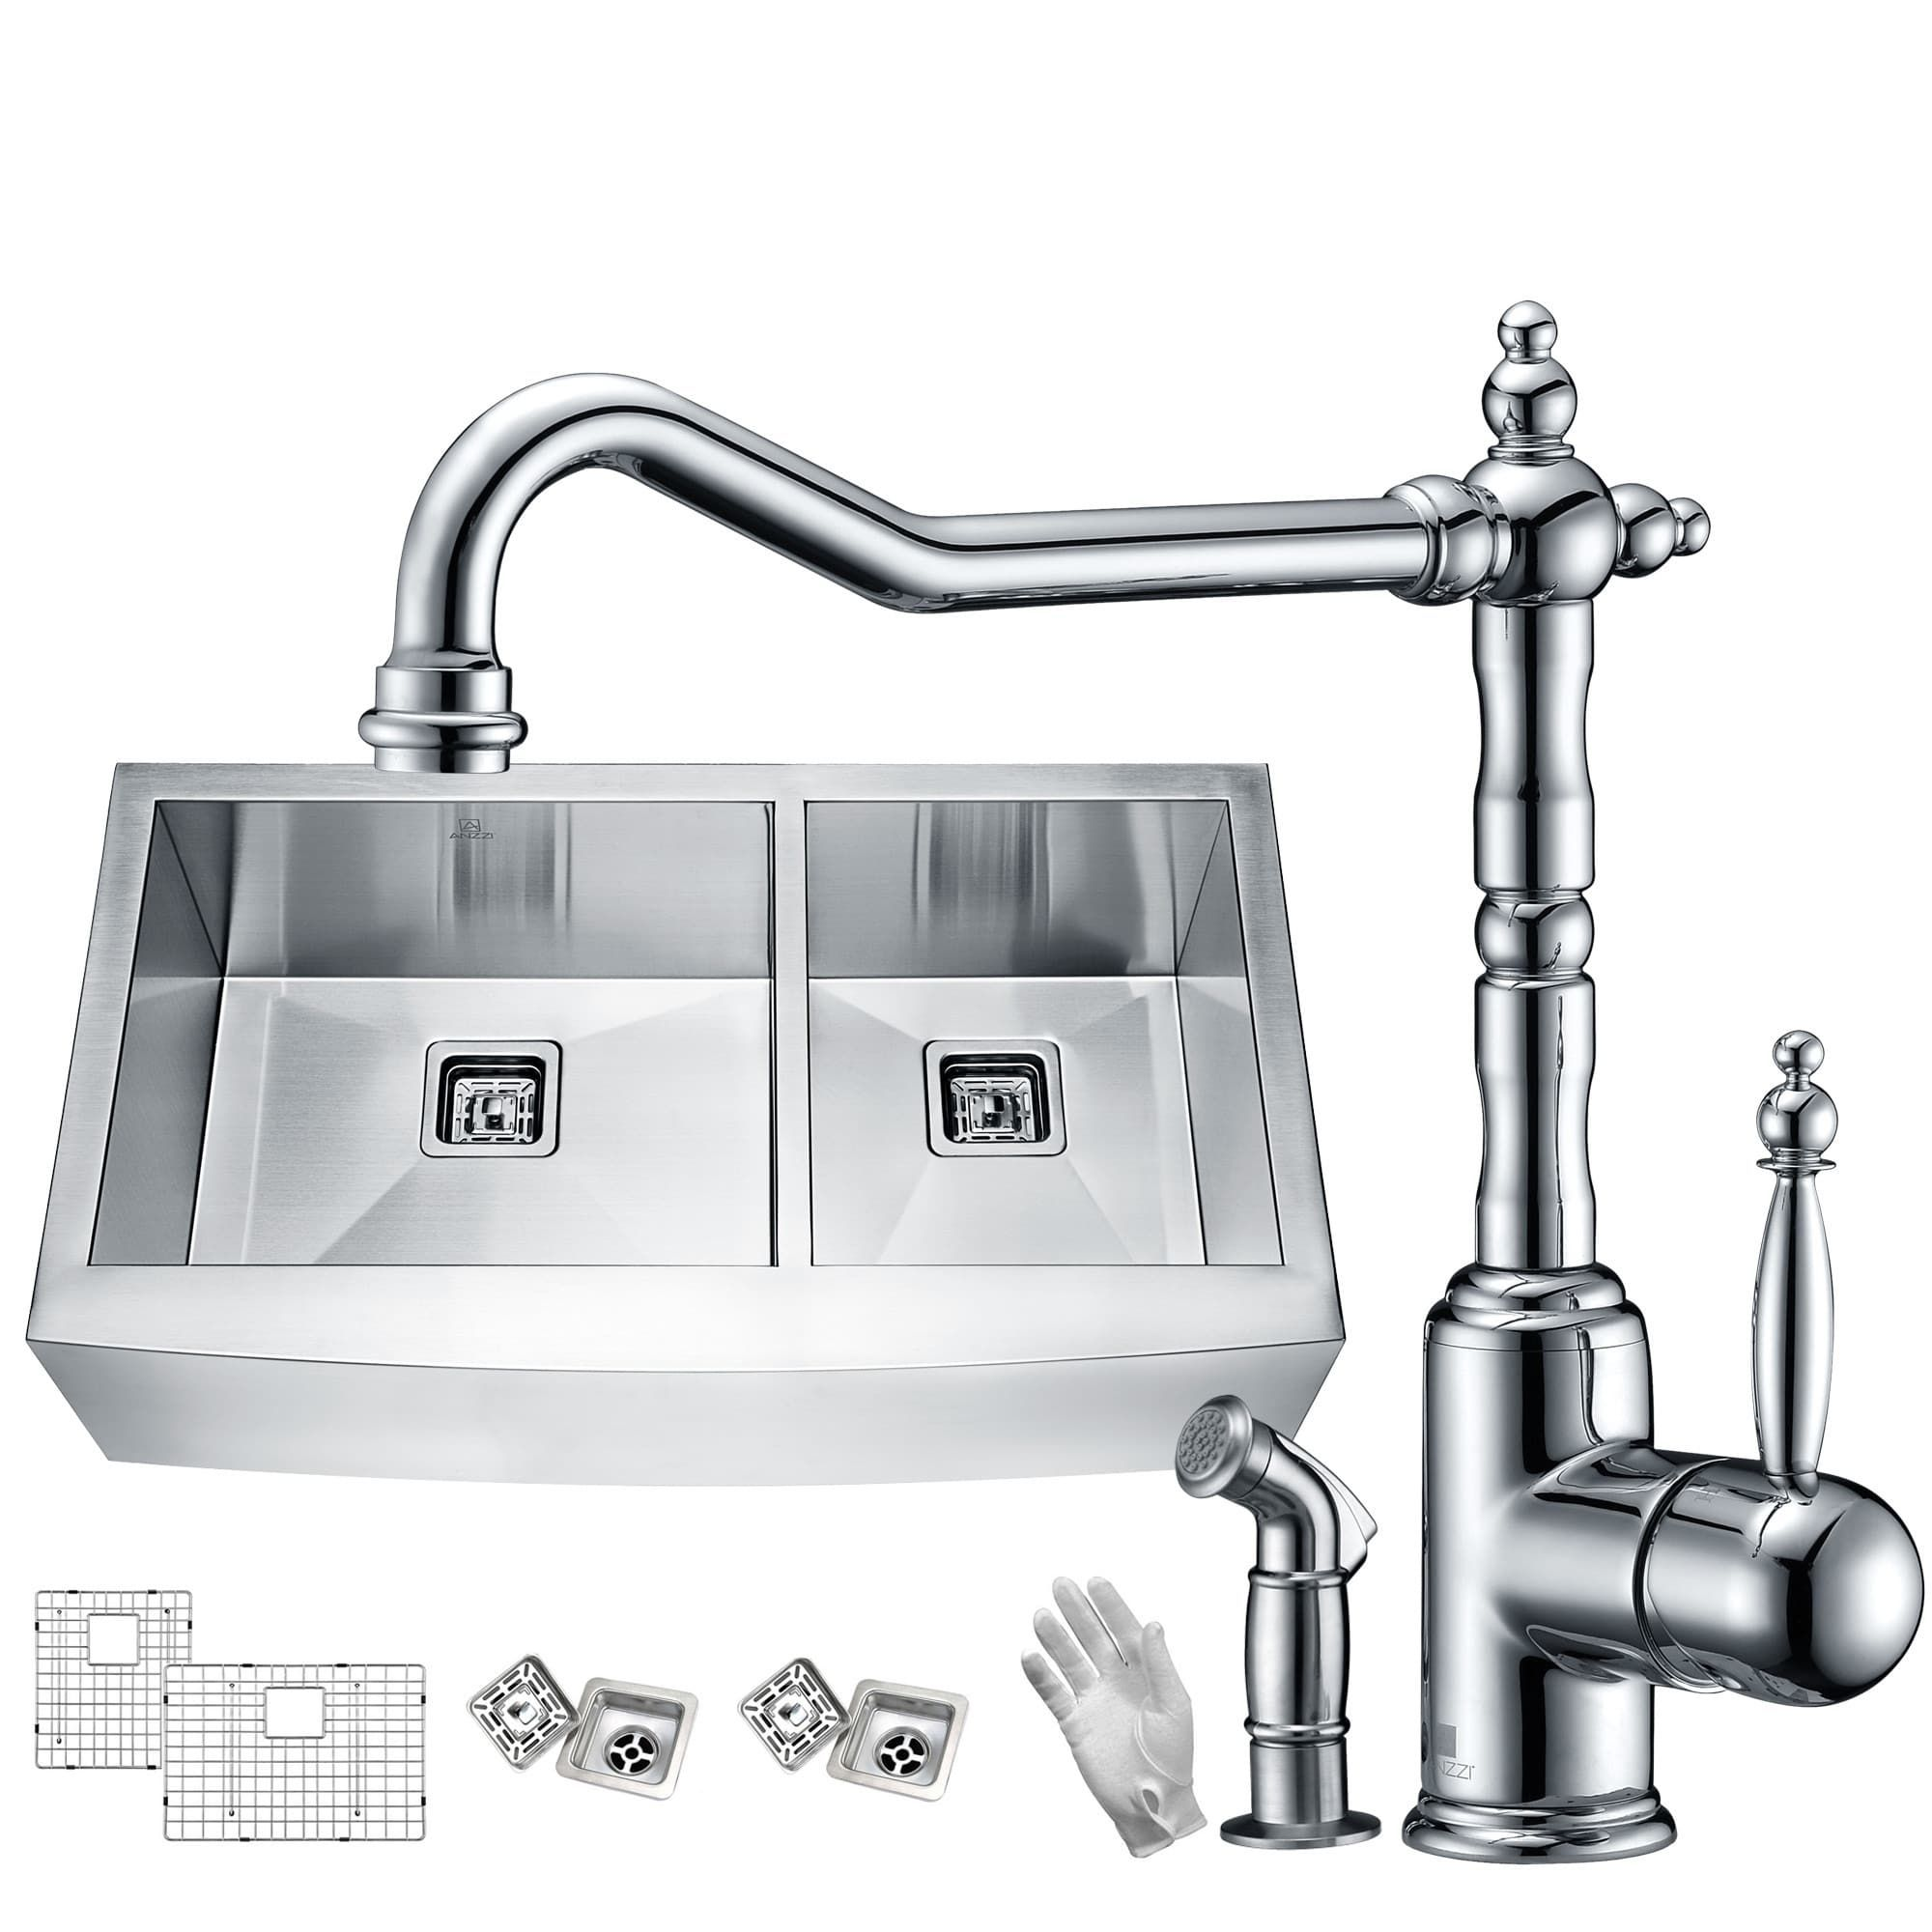 Elysian Farmhouse Stainless Steel 33 in. 60/40 Double Bowl